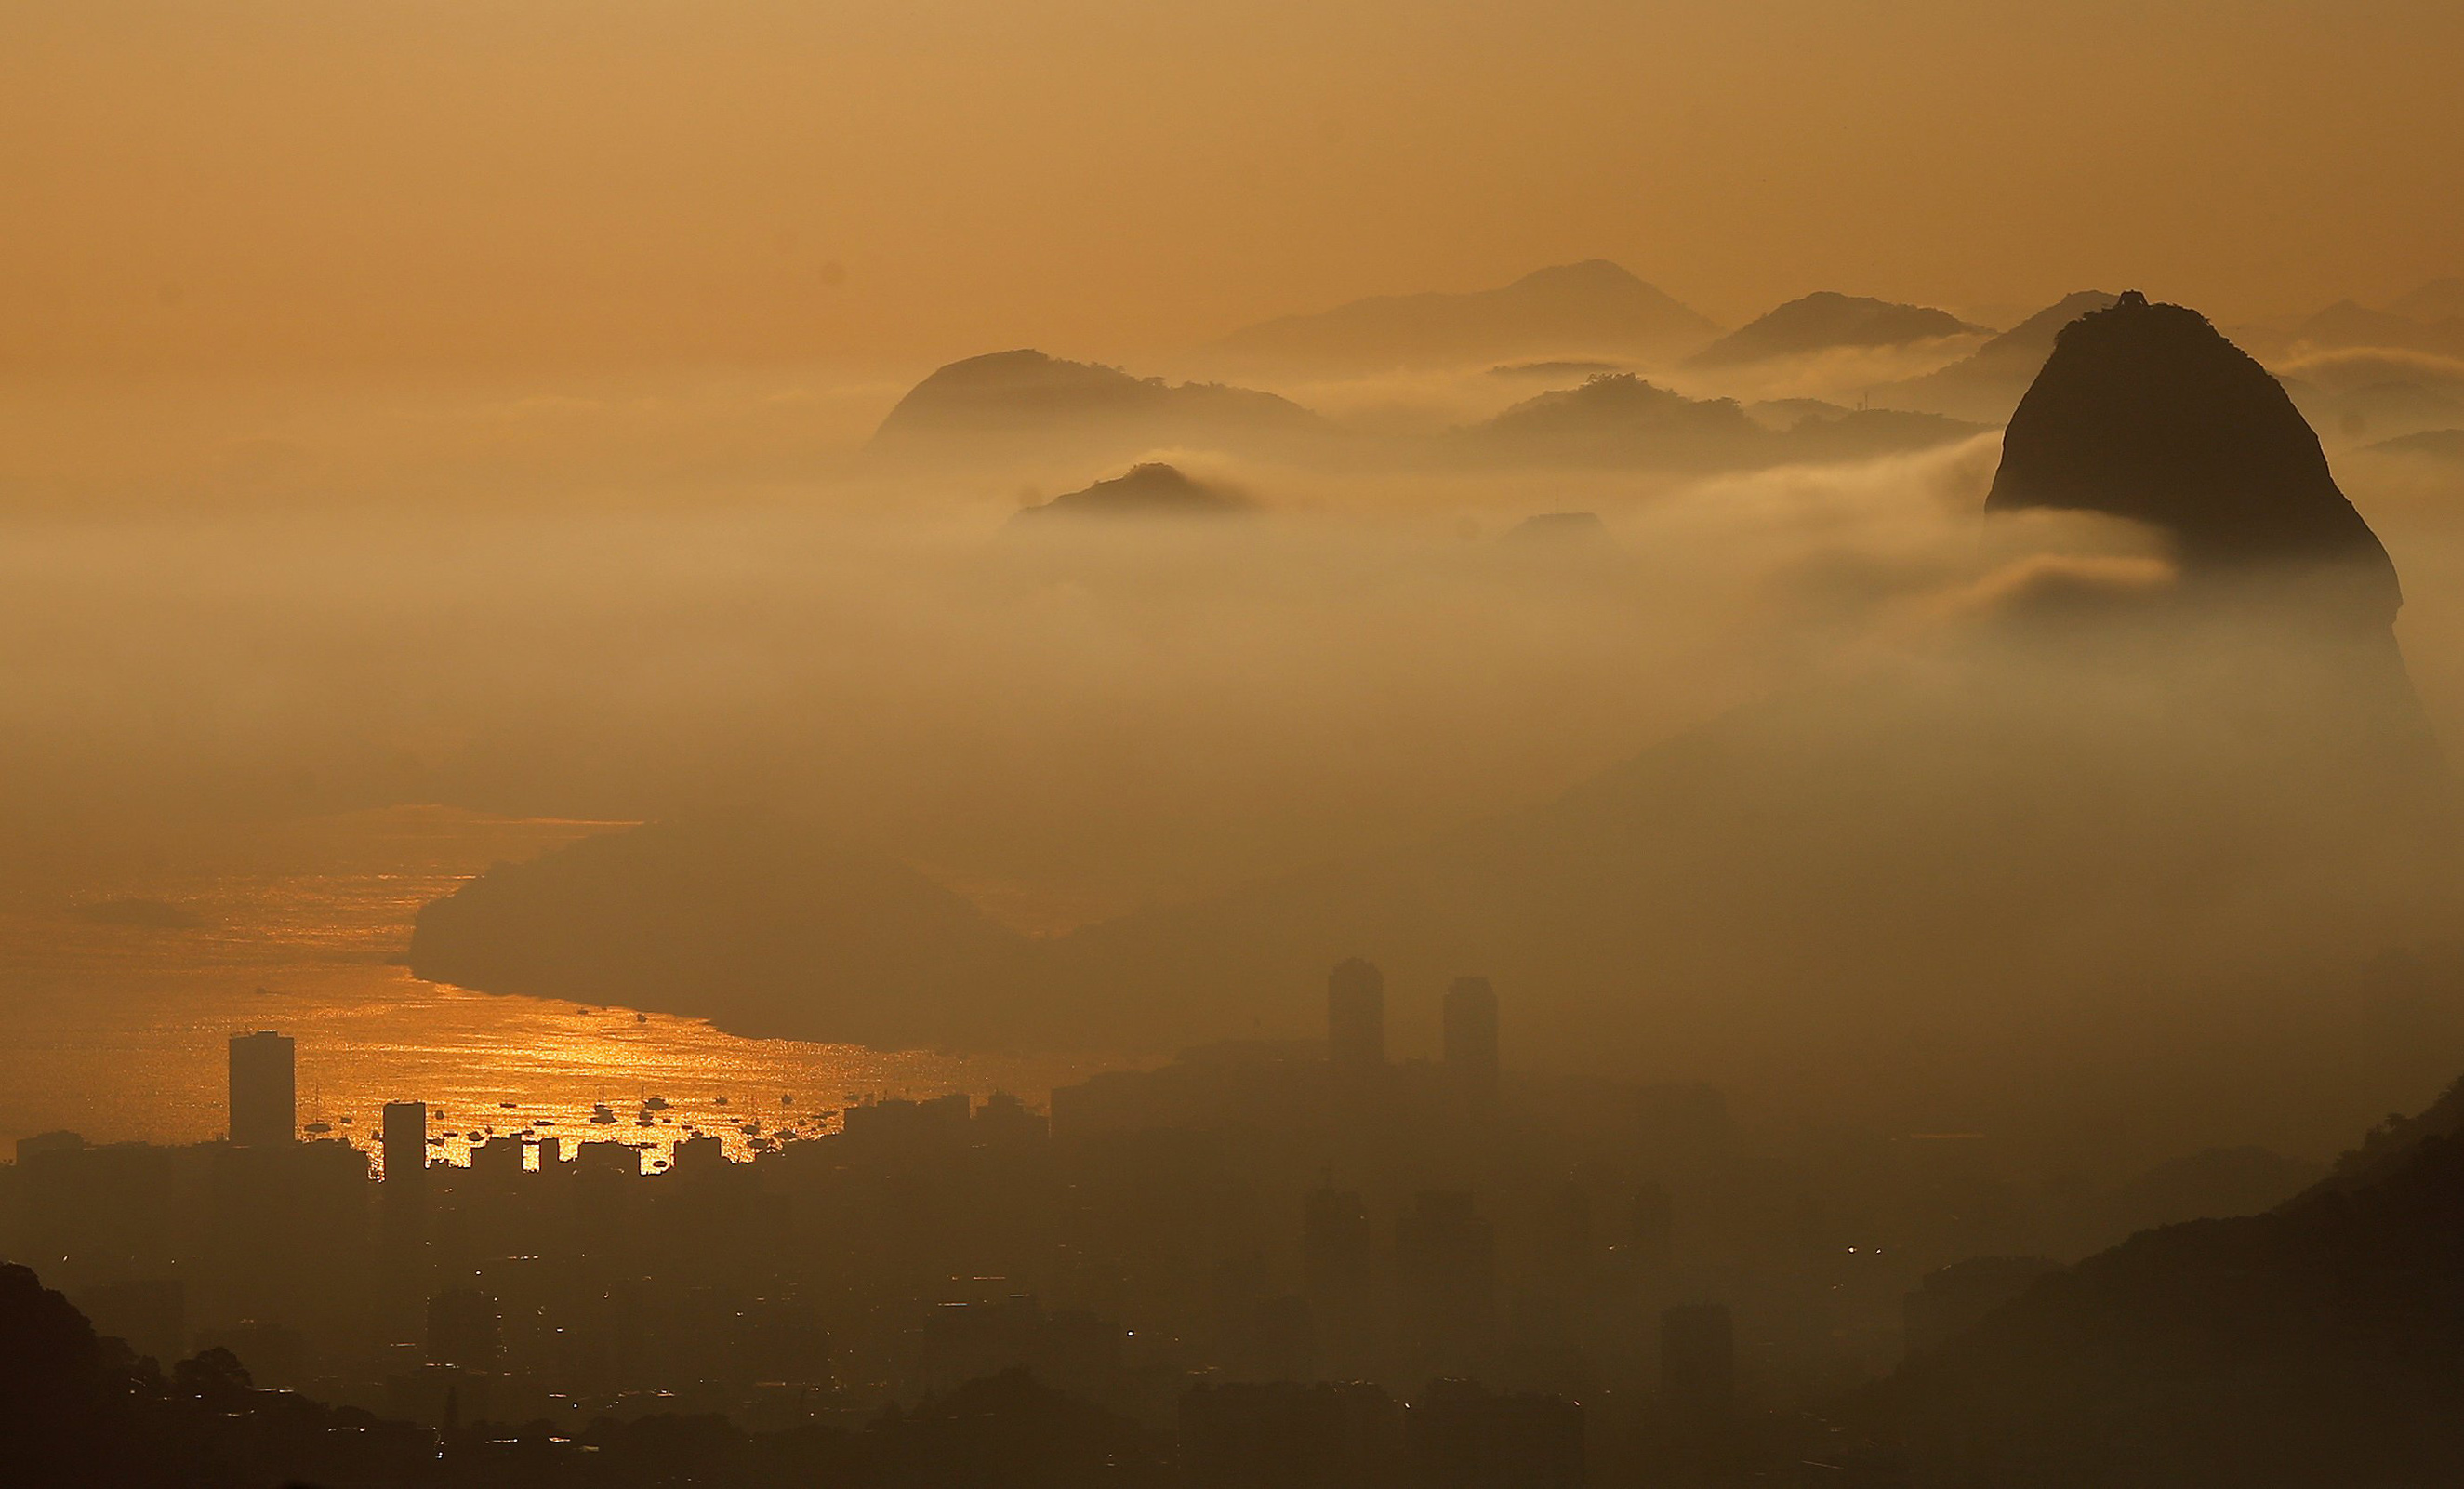 Sugarloaf Mountain is seen from the Vista Chinesa (Chinese View) during sunrise in Rio de Janeiro on May 4, 2016.